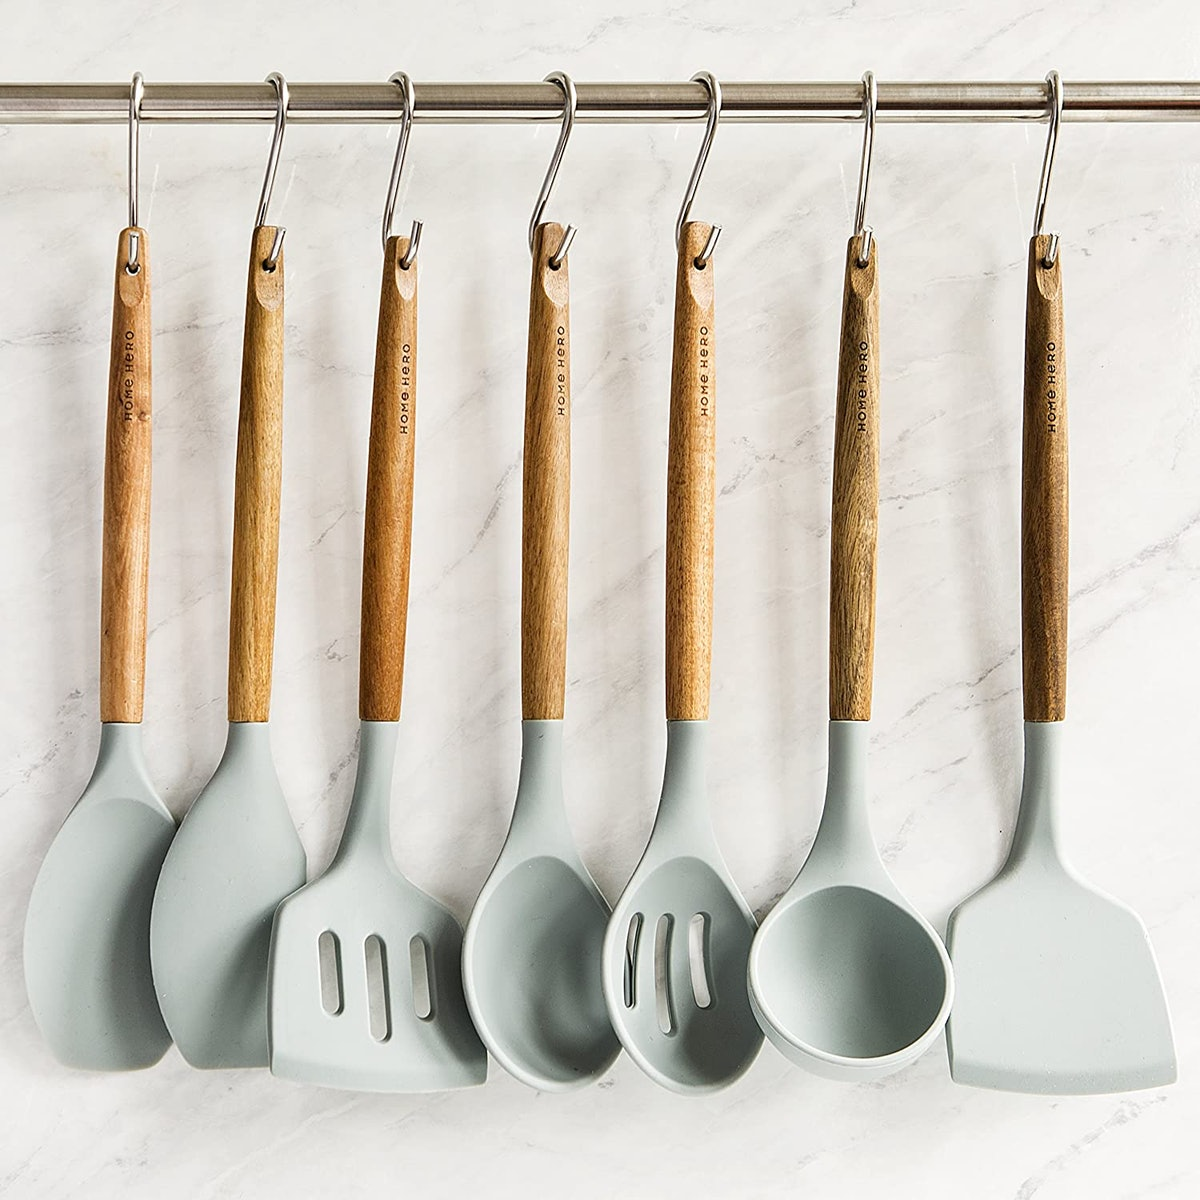 Home Hero Silicone Cooking Utensil Set (8 Pieces)